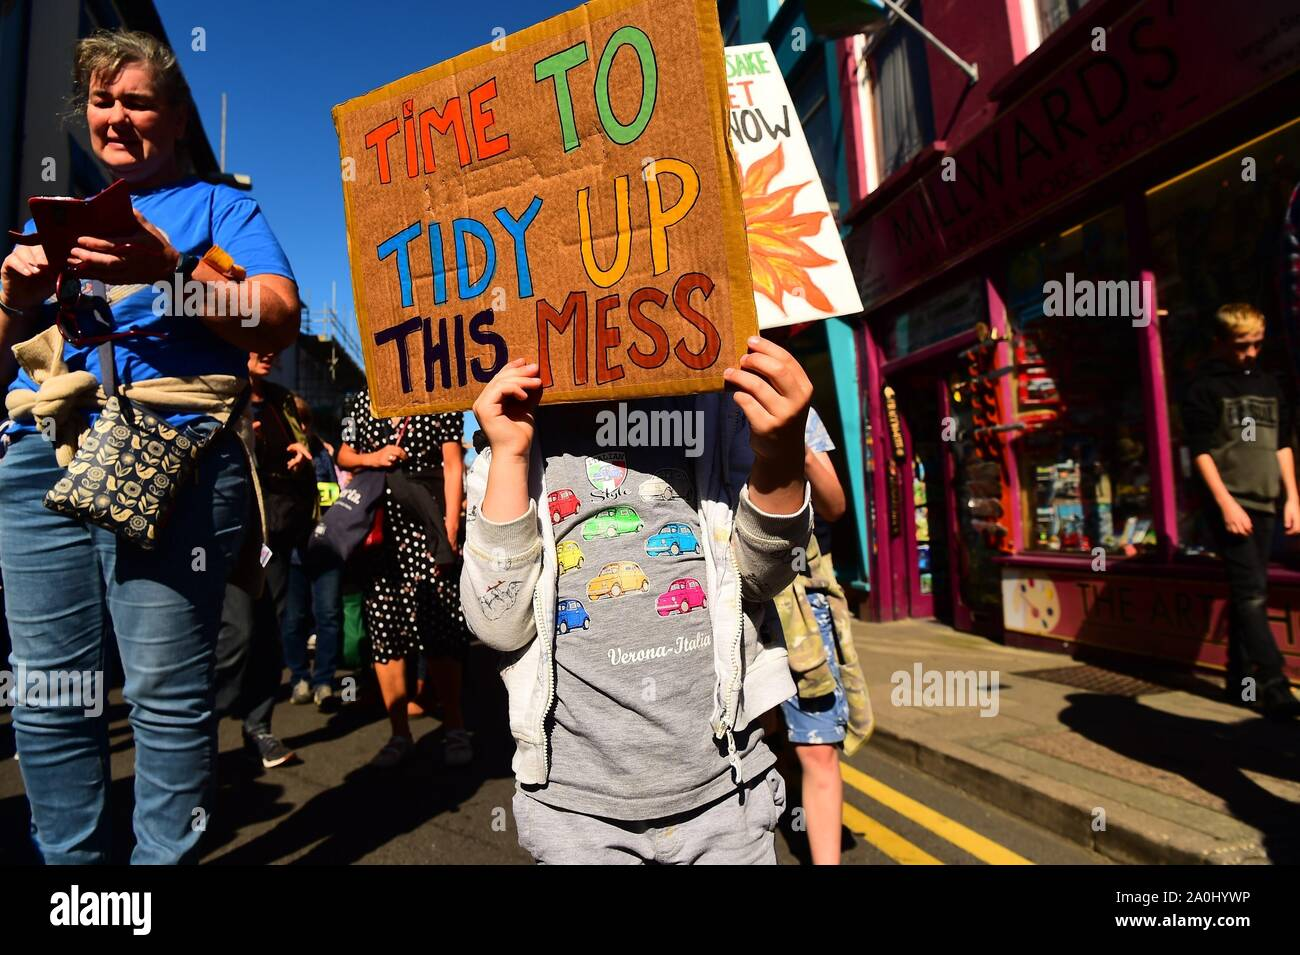 Aberystwyth Wales UK Friday 21 September 2019 Hundreds of school pupils, students and other supporters marched through the streets of Aberystwyth as part of 'Earth Strike', a global series of events to protest about and raise awareness of the threat of climate change to the planet. The protests are timed to take place 3 days before the UN emergency climate summit on 23rd September.  photo credit Keith Morris/Alamy Live News Stock Photo